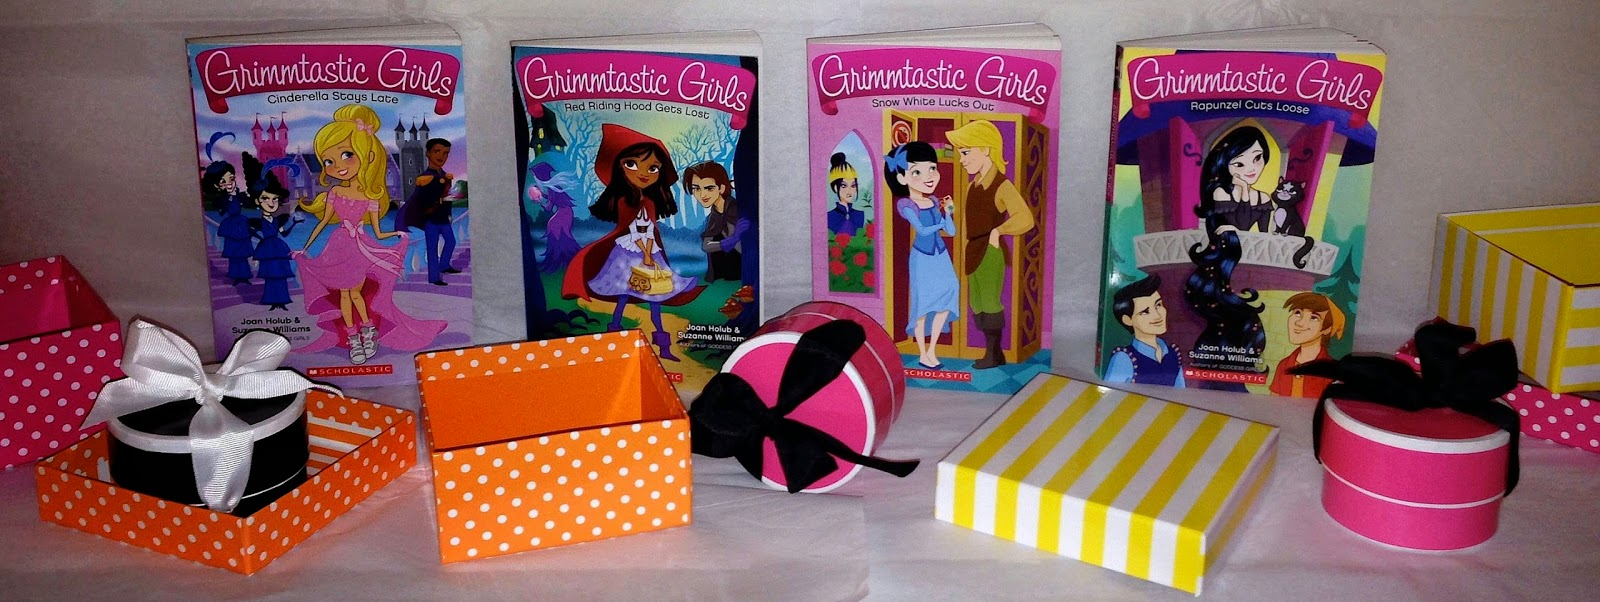 suzanne u0026 39 s place   grimmtastic girls books 1